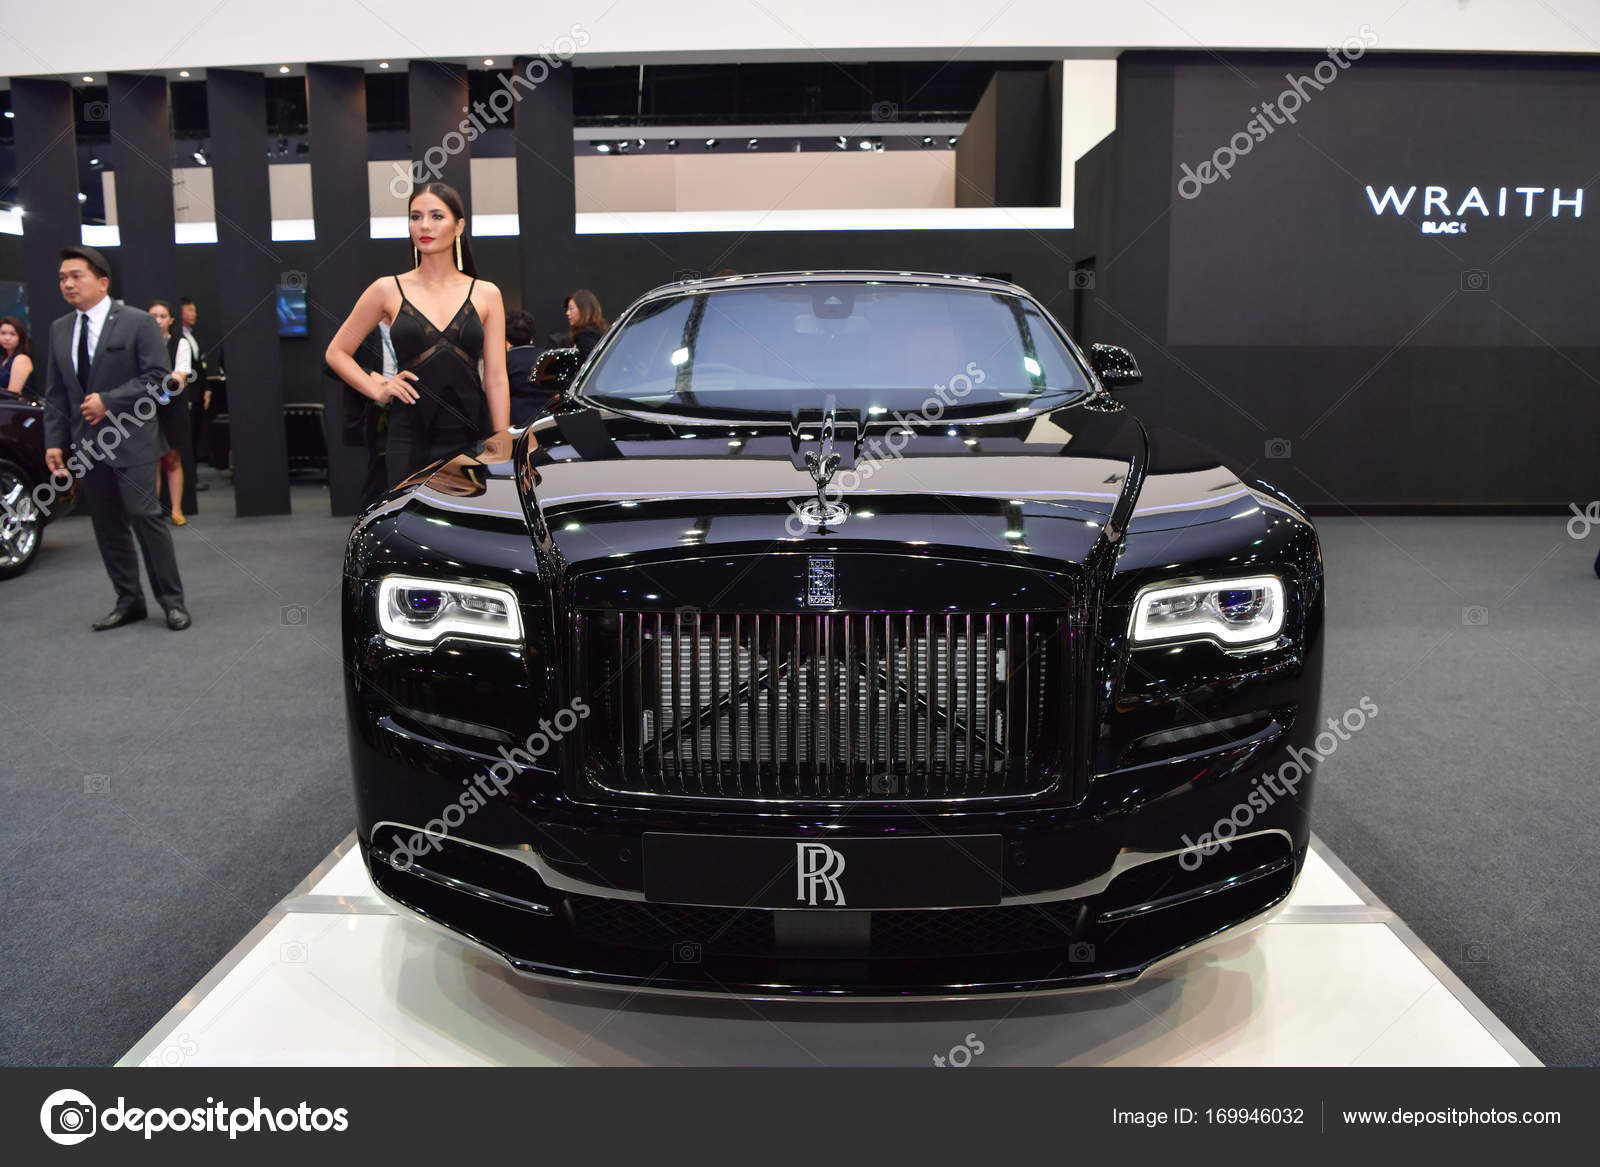 rolls royce red wraith car stock editorial photo. Black Bedroom Furniture Sets. Home Design Ideas